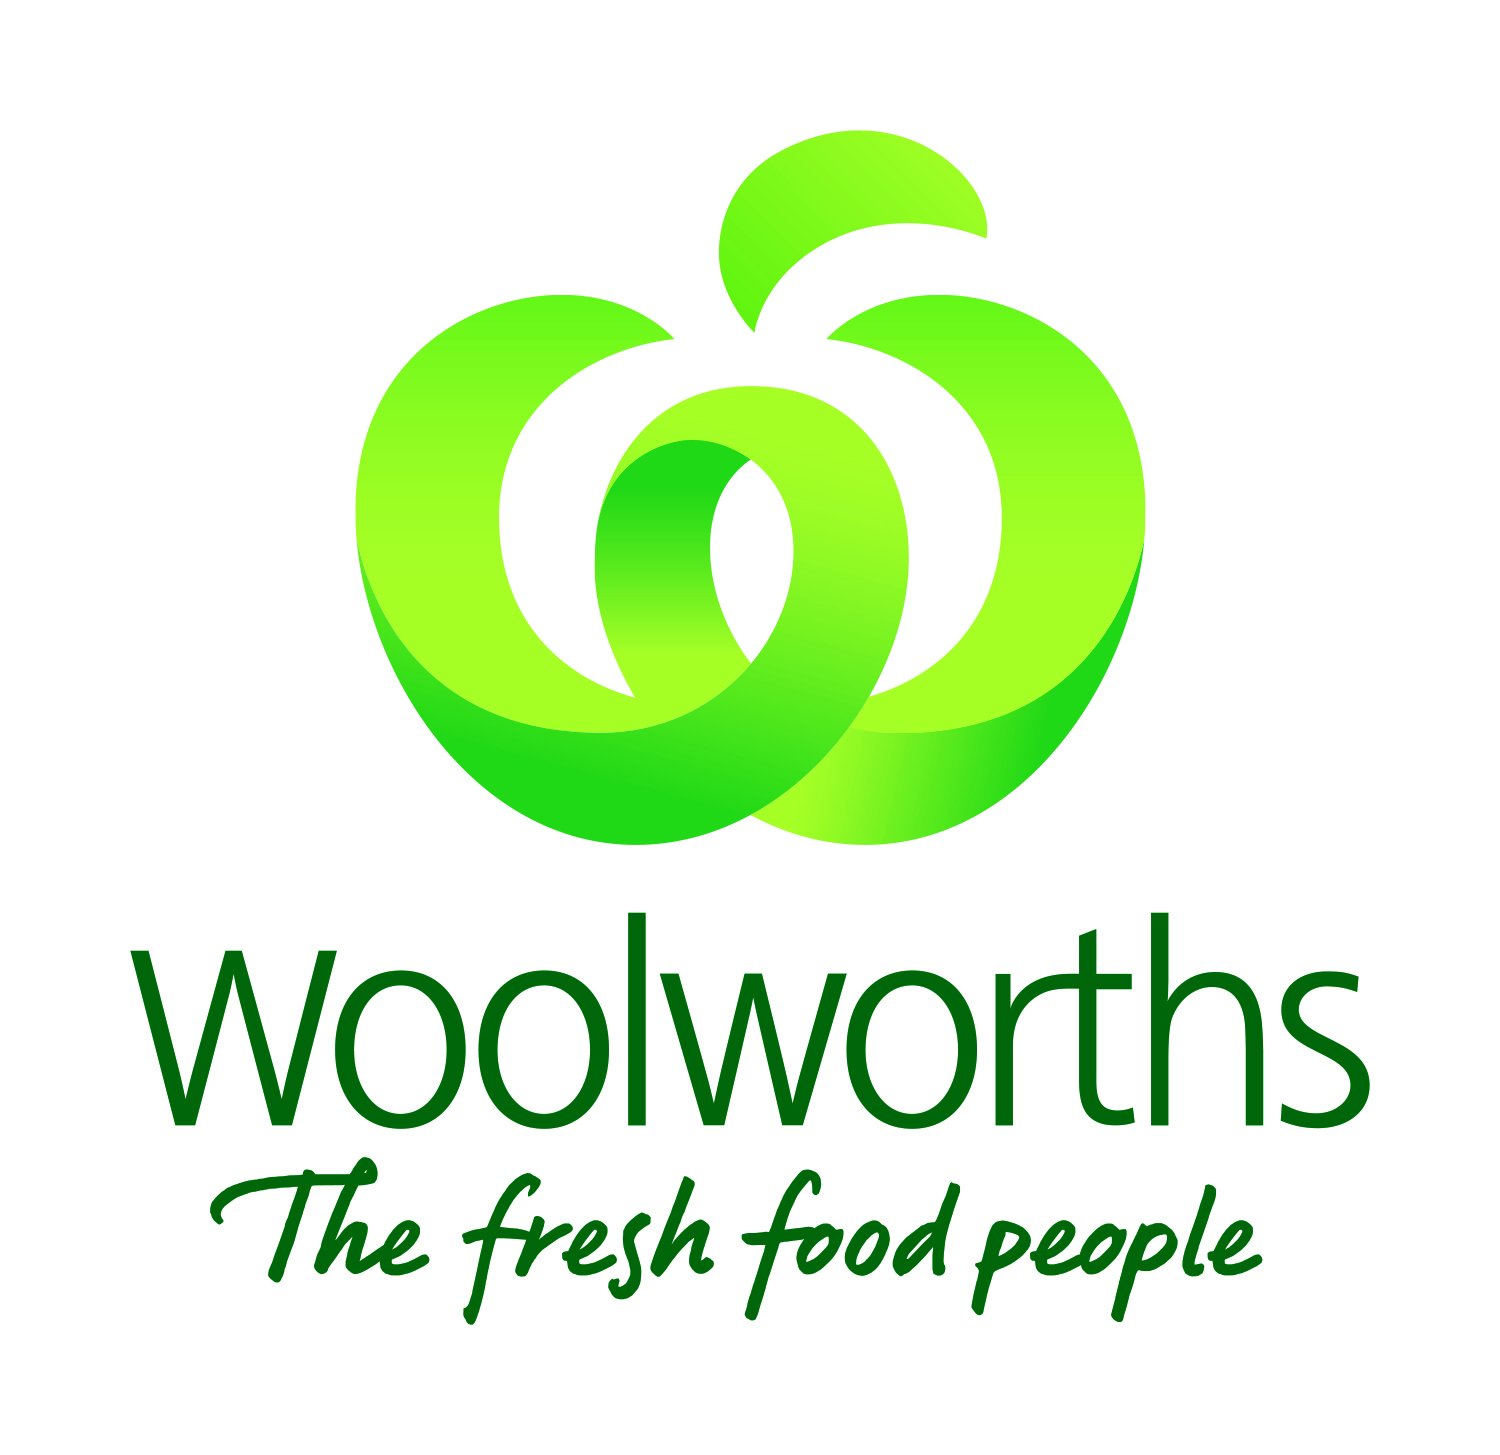 Woolworths The Fresh Food People